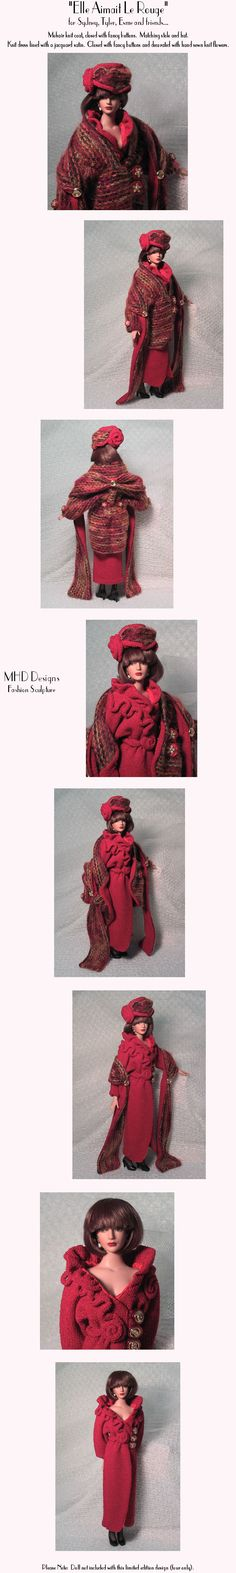 MHD Designs - She Loved Red